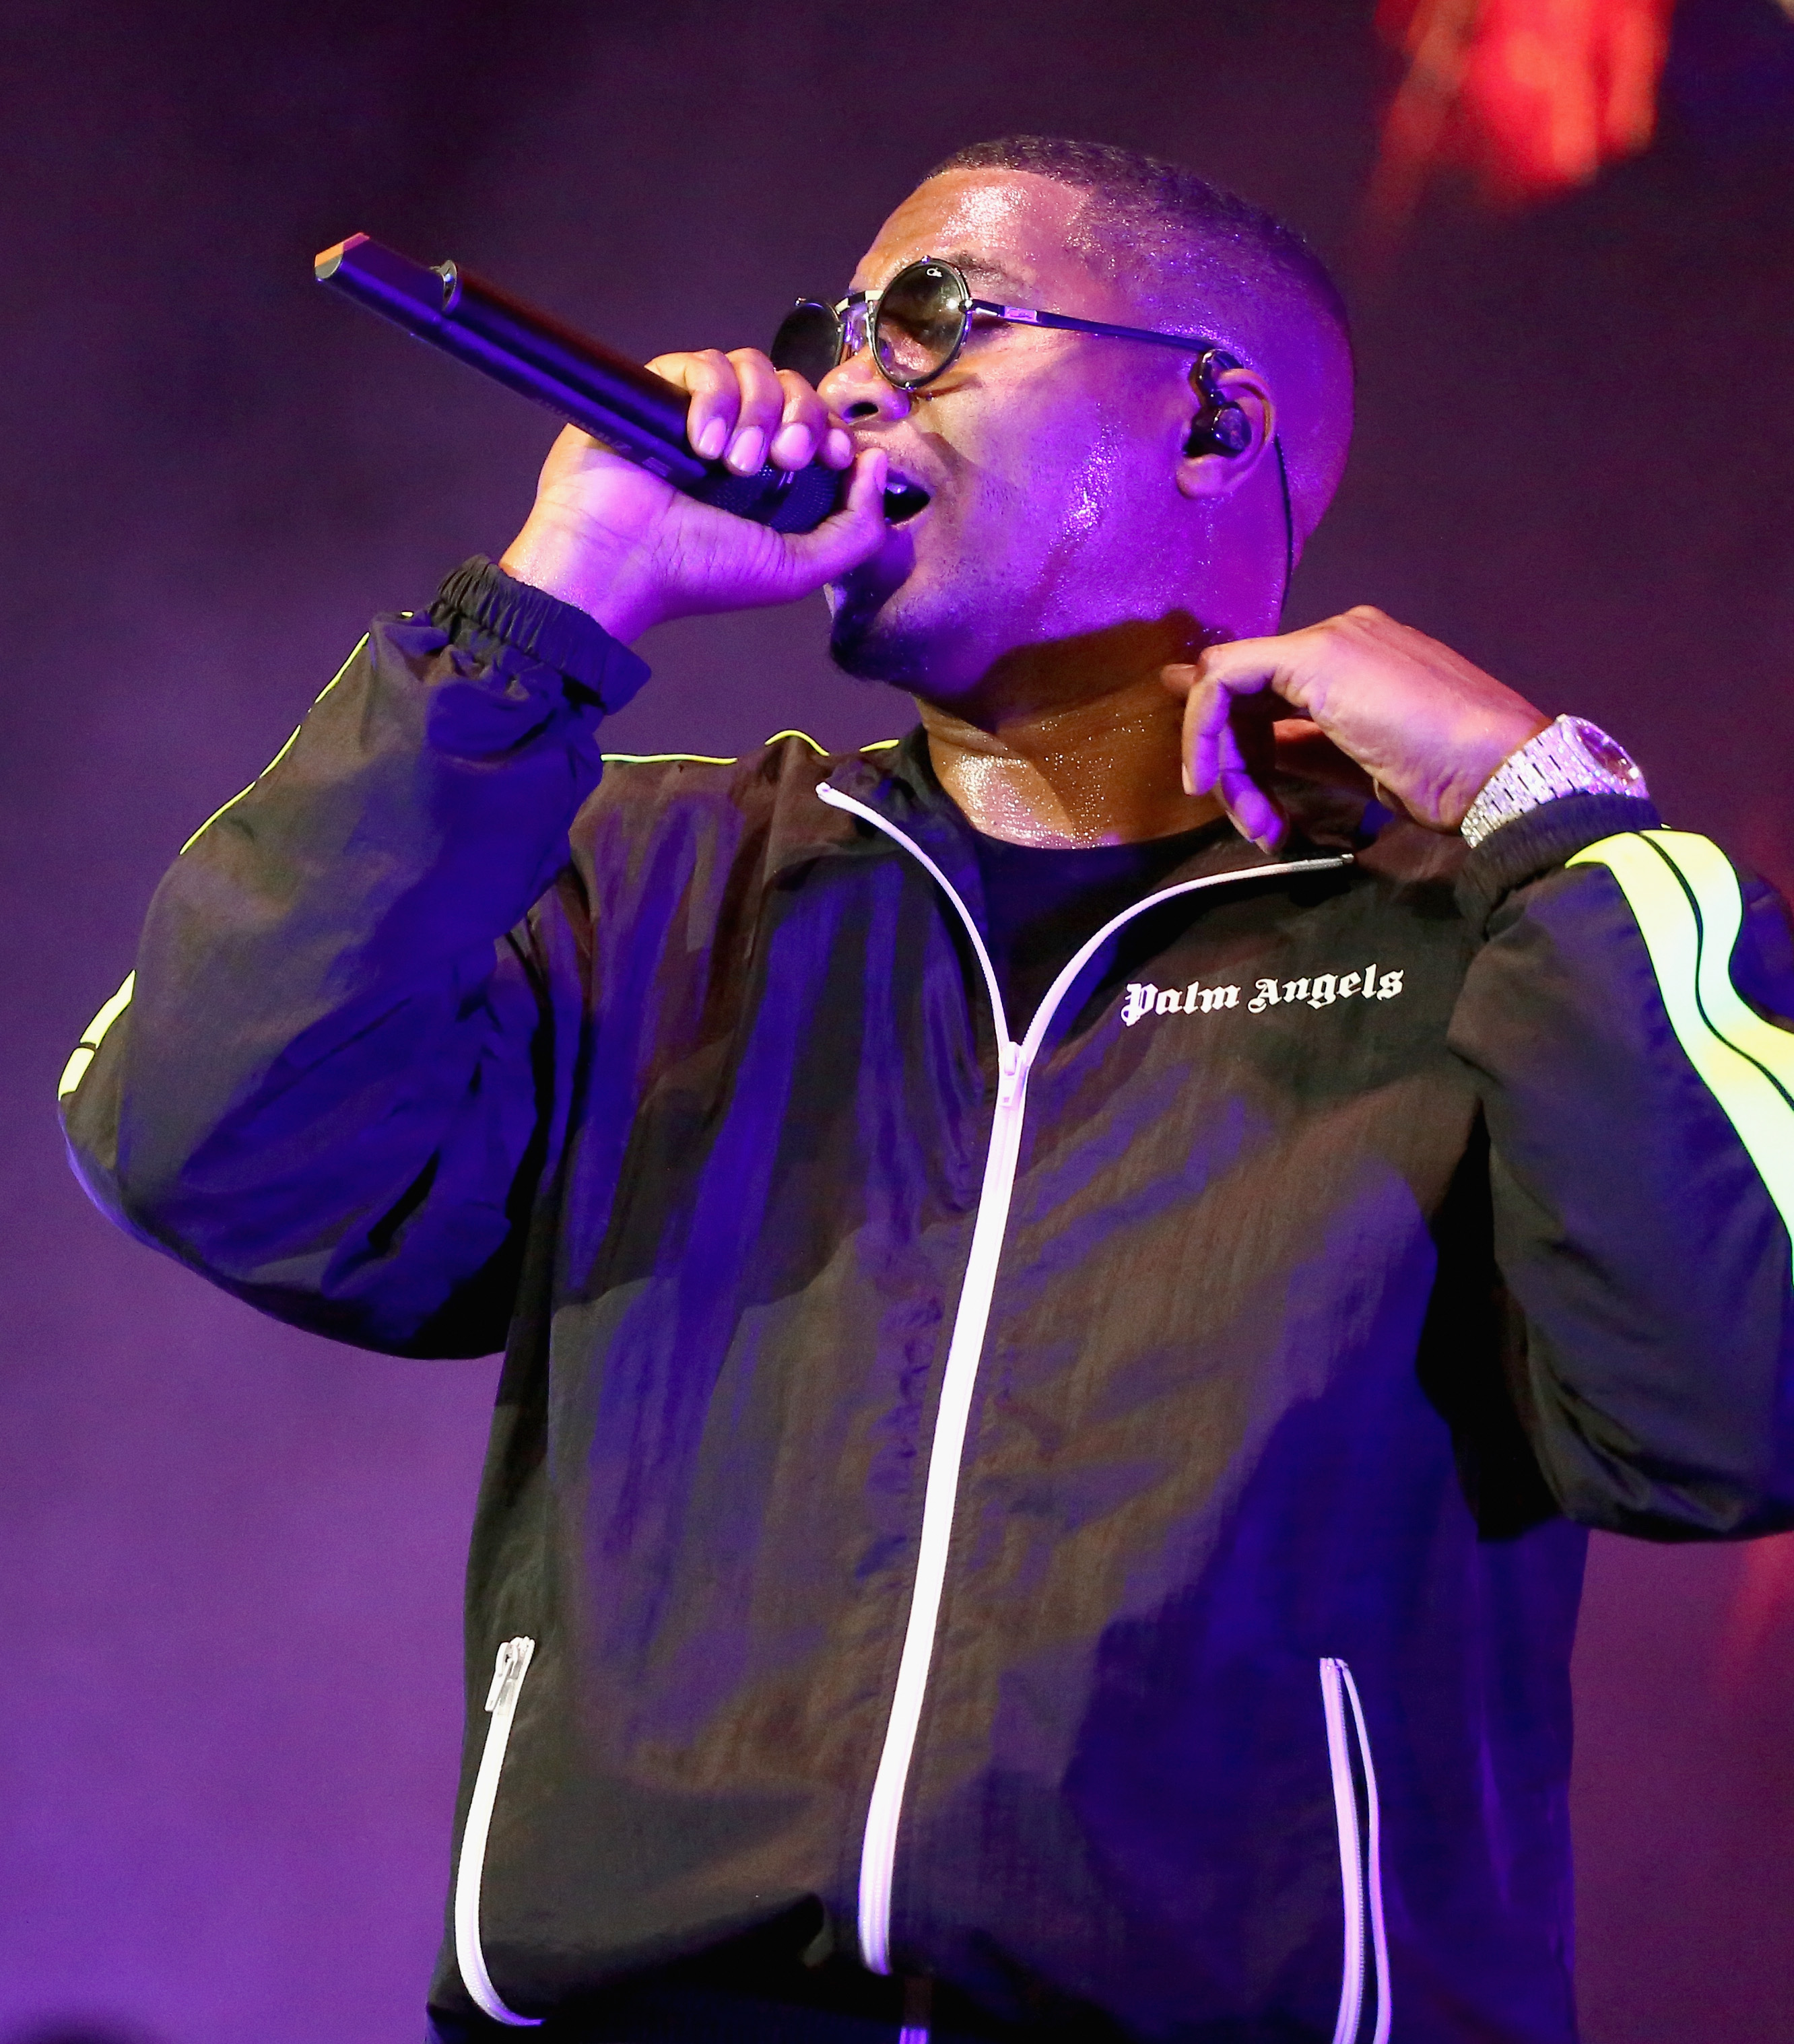 Nas' 17 Year-Old Daughter Tweets About Her Sex Life On Twiter